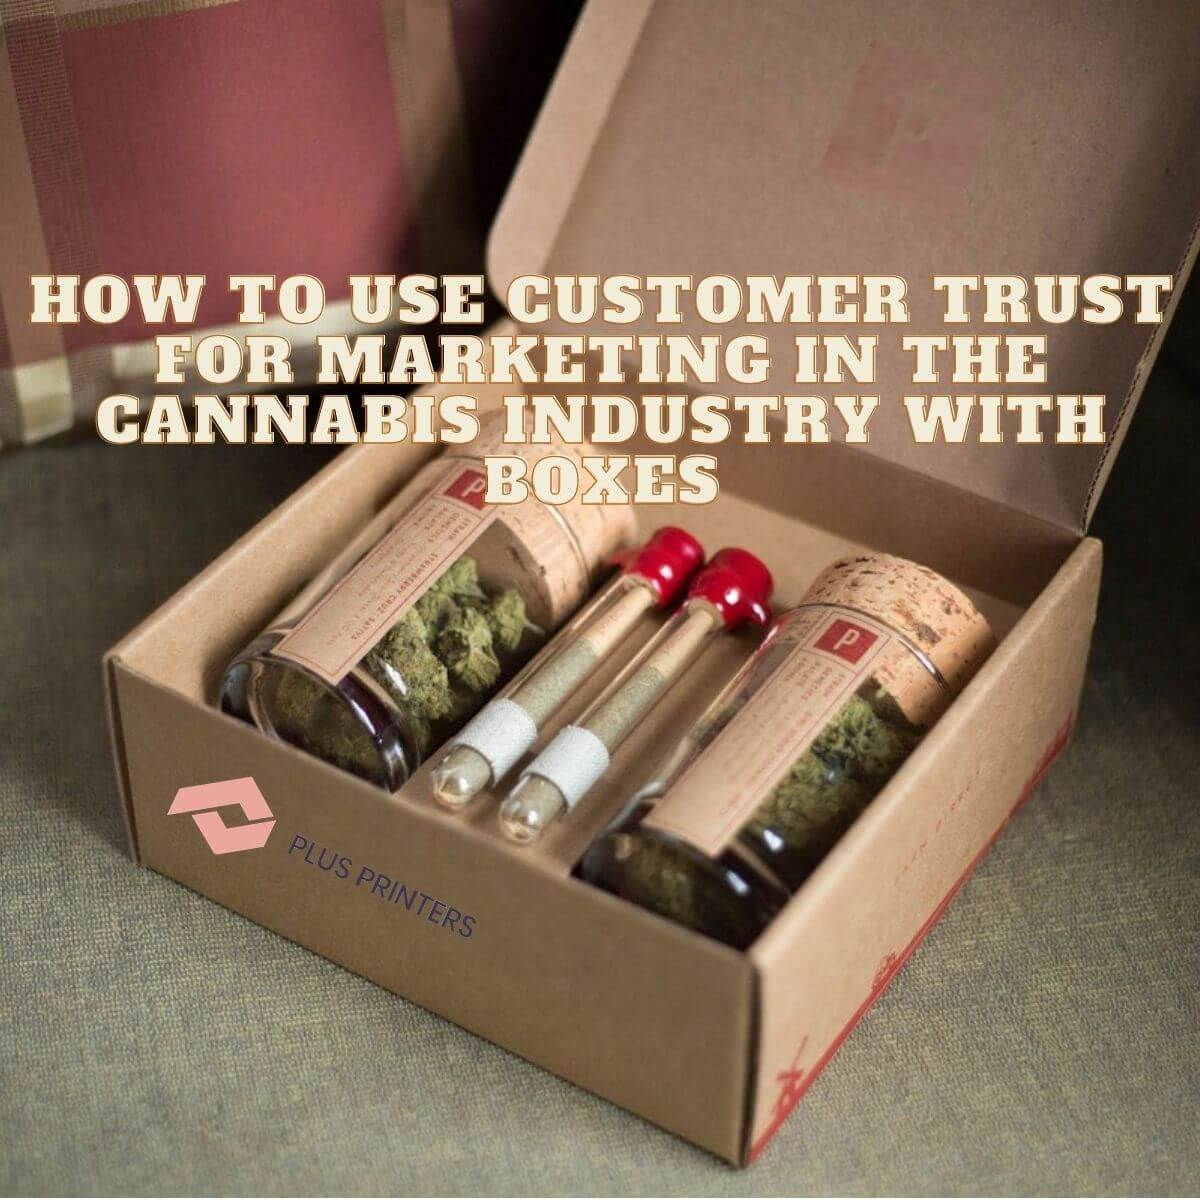 Marketing in the Cannabis Industry with Boxes